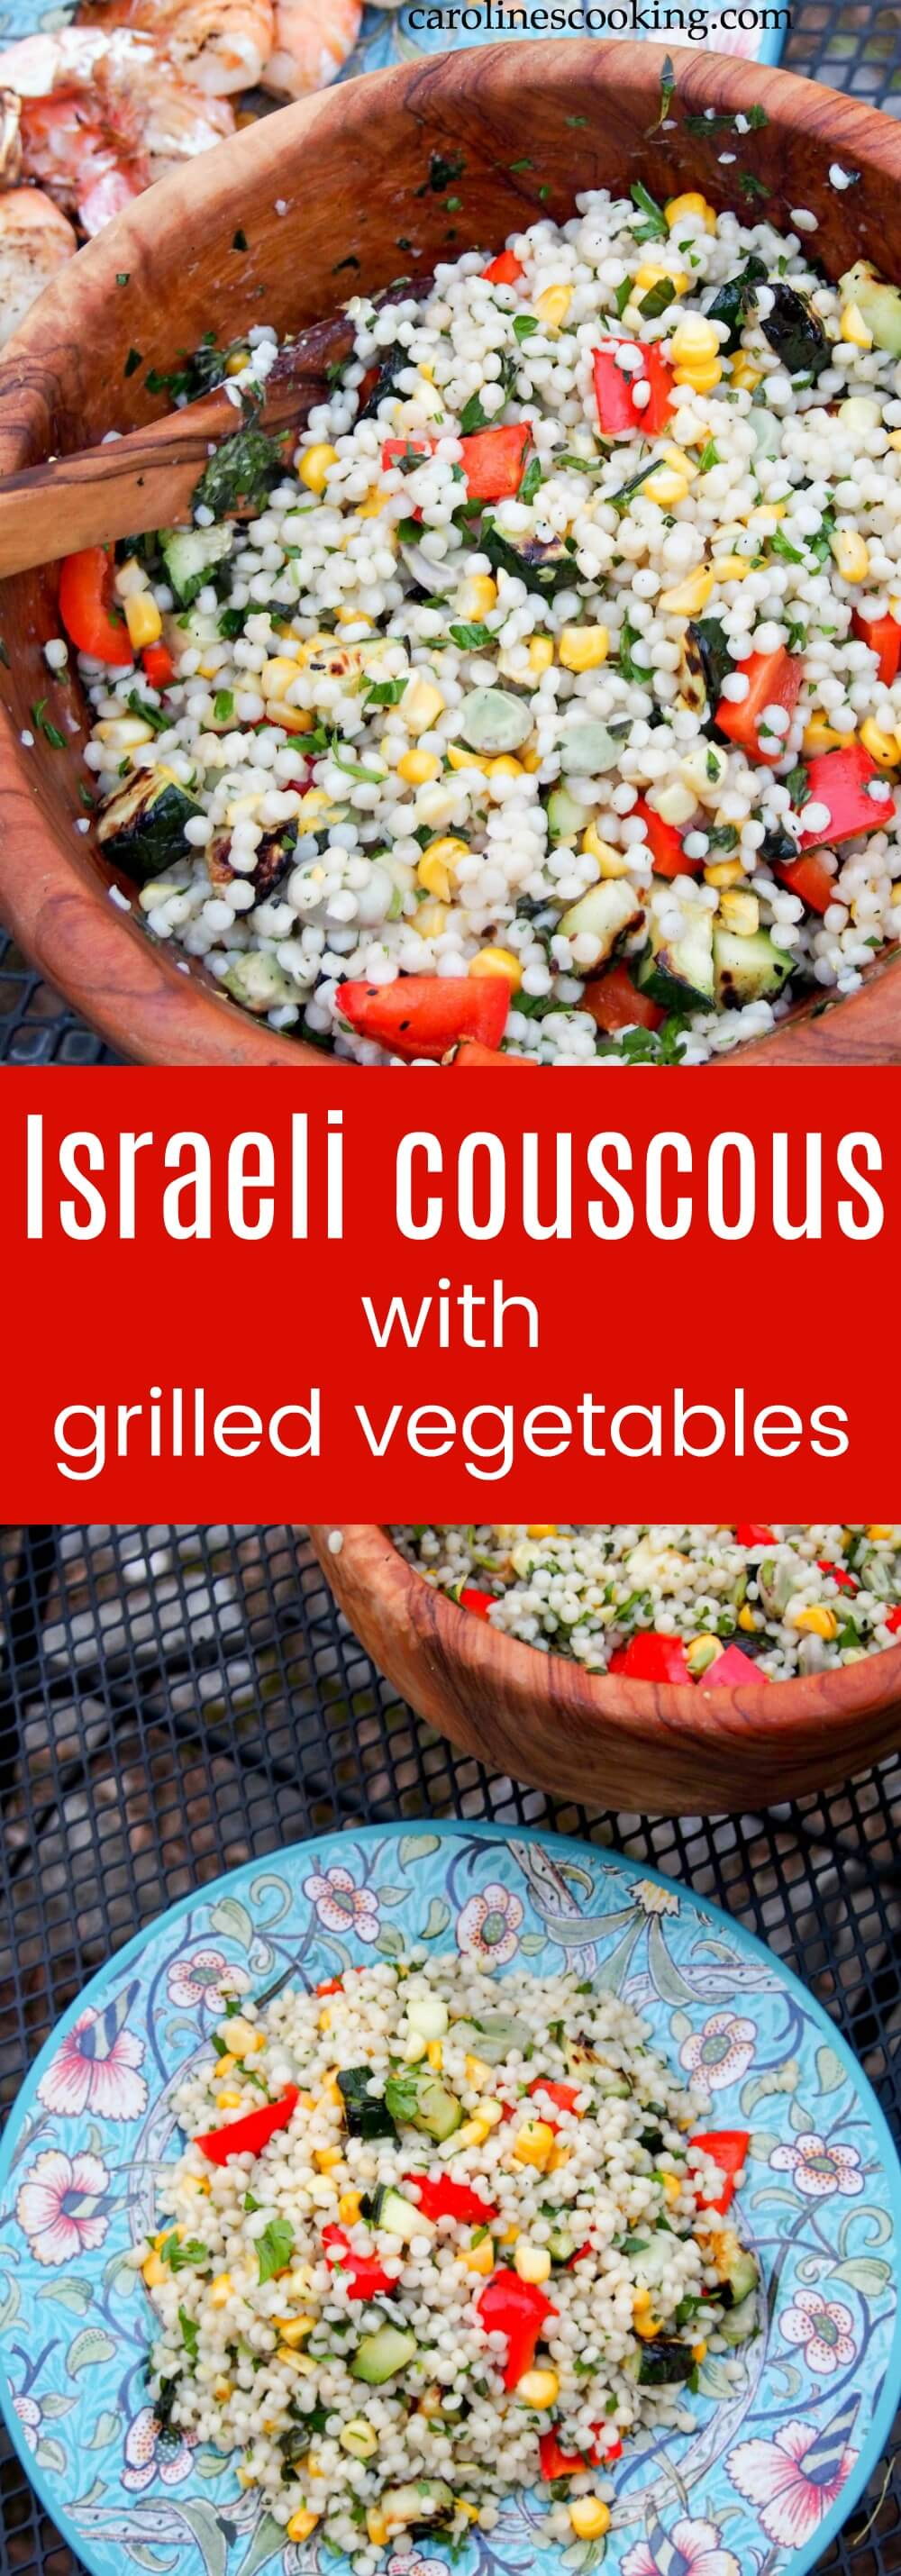 Whether you're looking for a quick vegetarian meal or a flavorful side, this Israeli couscous with grilled vegetables is just the thing. Perfect summer food